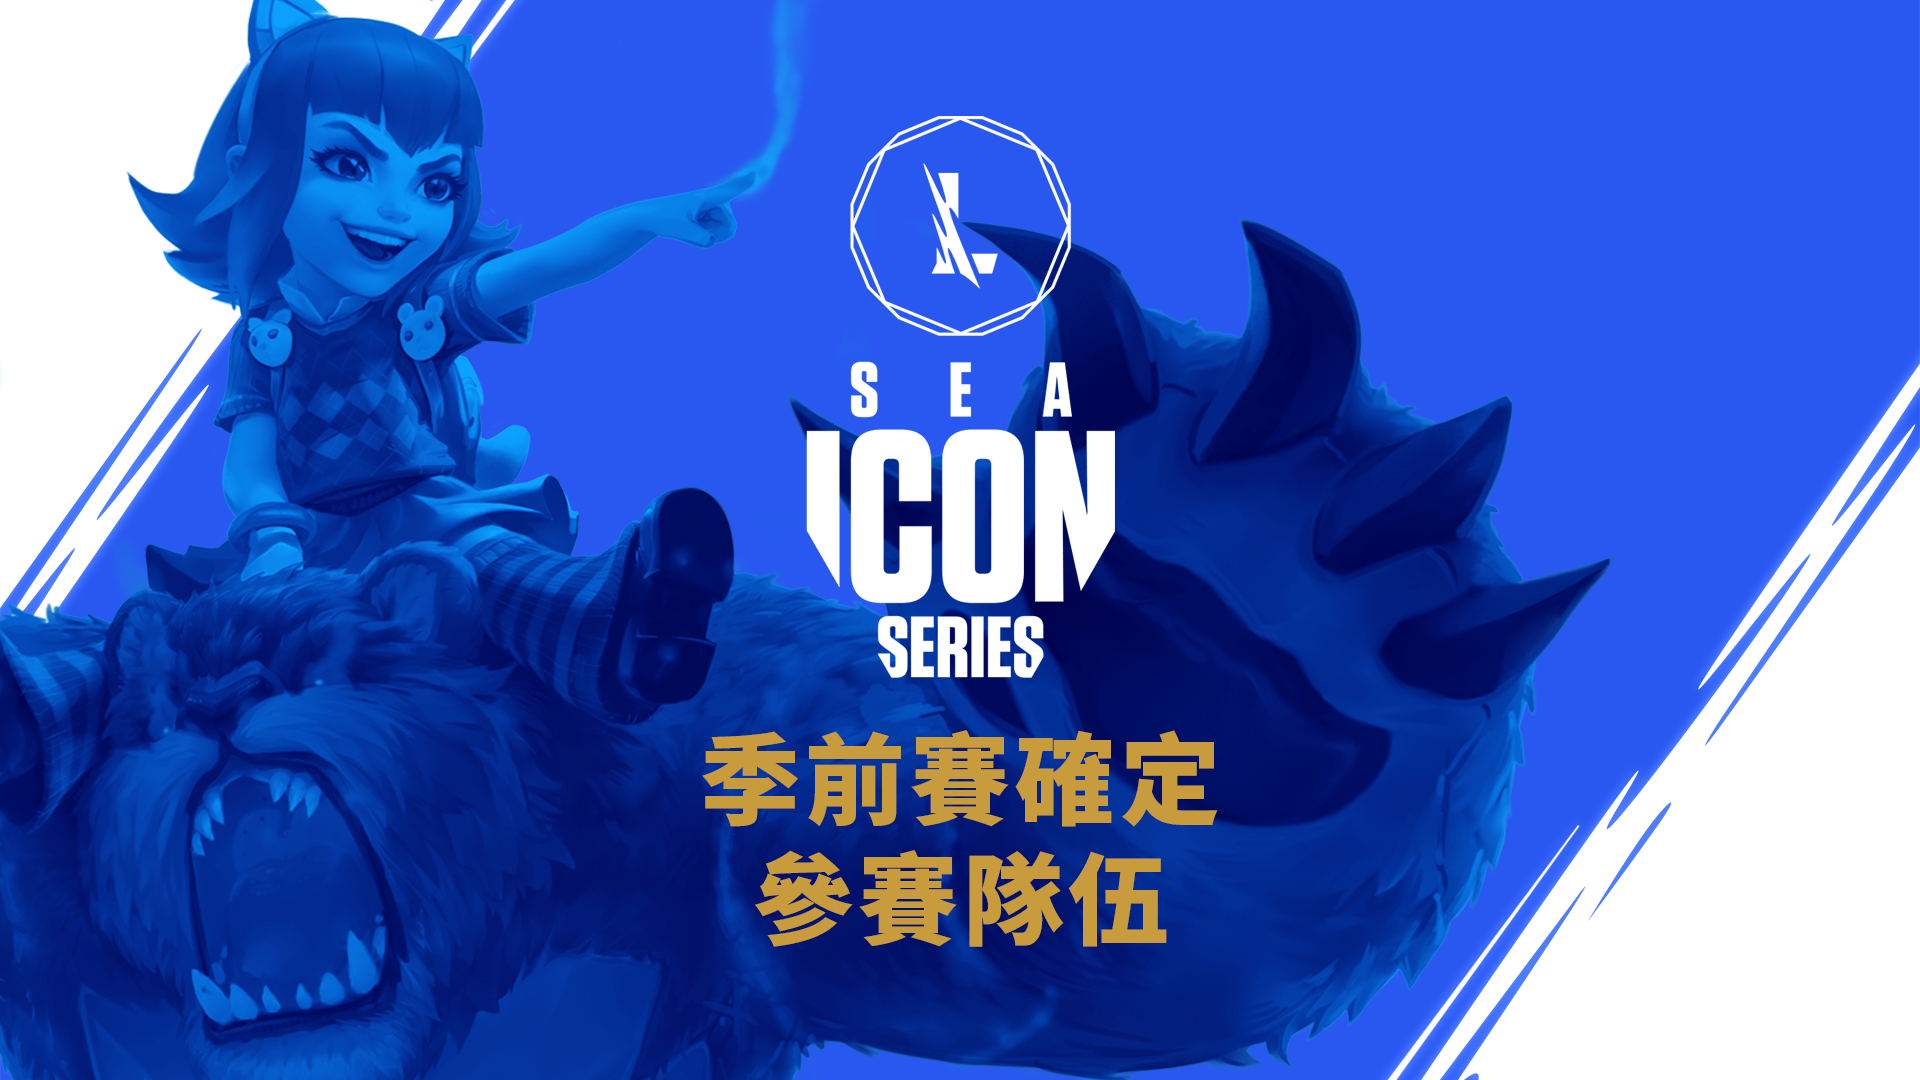 ICON-SERIES_Team-and-broadcast-announcement_TC.png